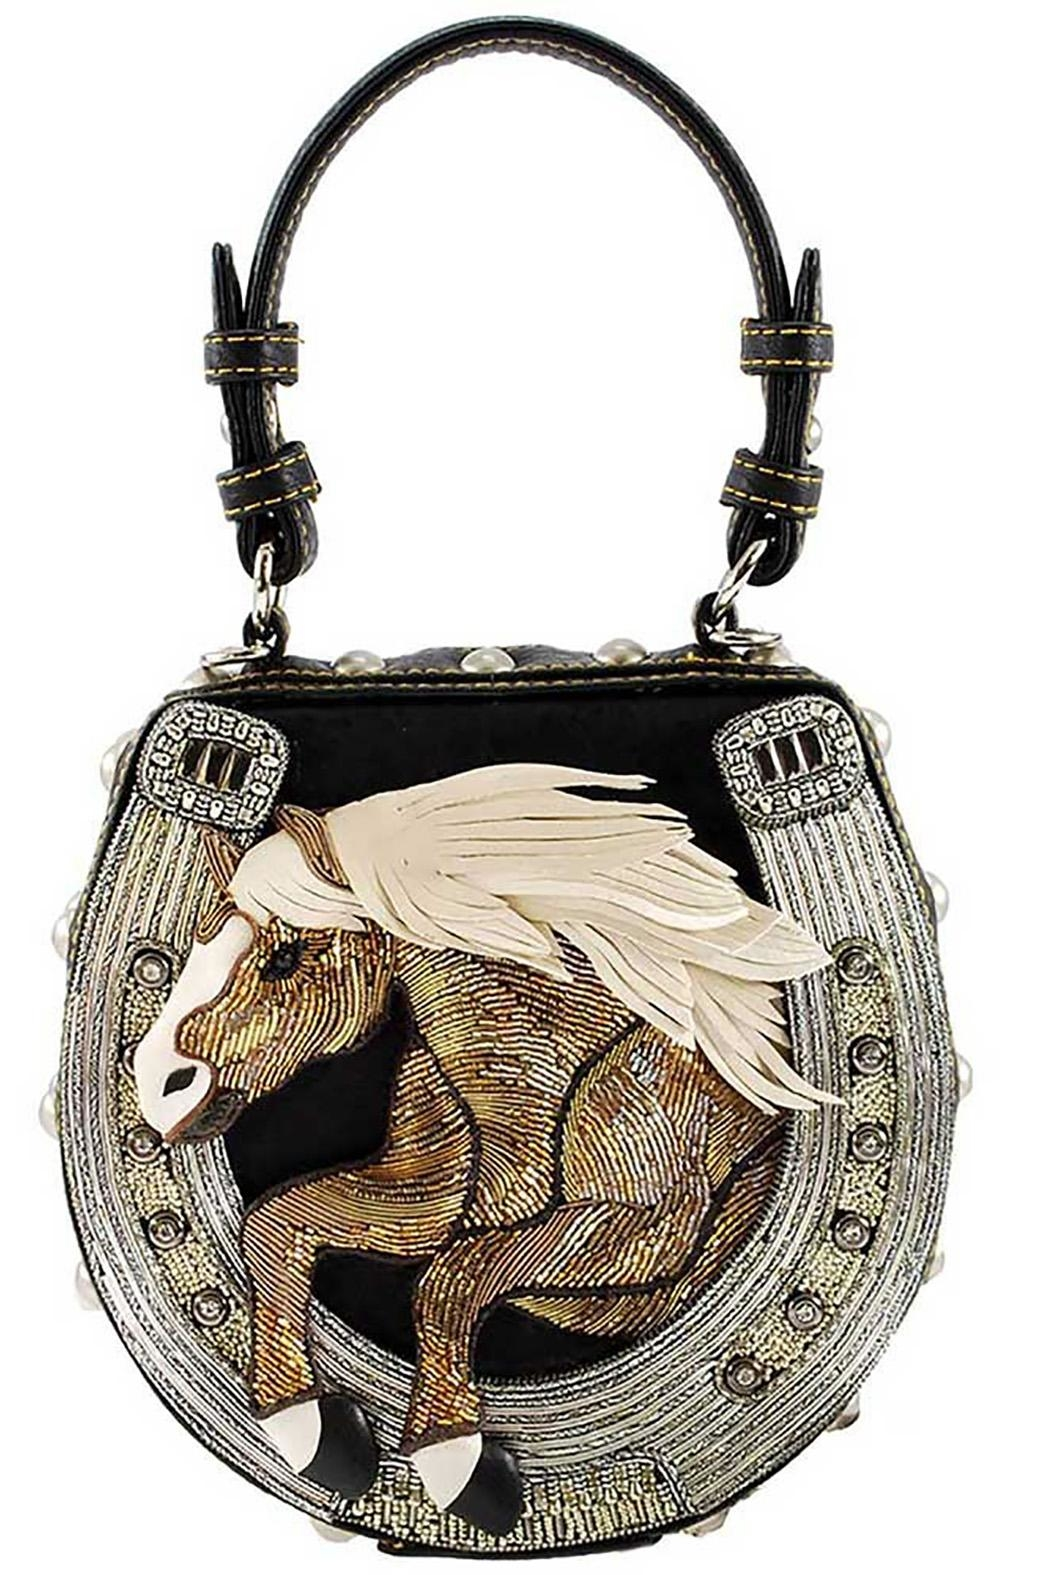 4c44069199 Mary Frances Mane-Stay Horse Handbag from Dallas by Hip Chic ...